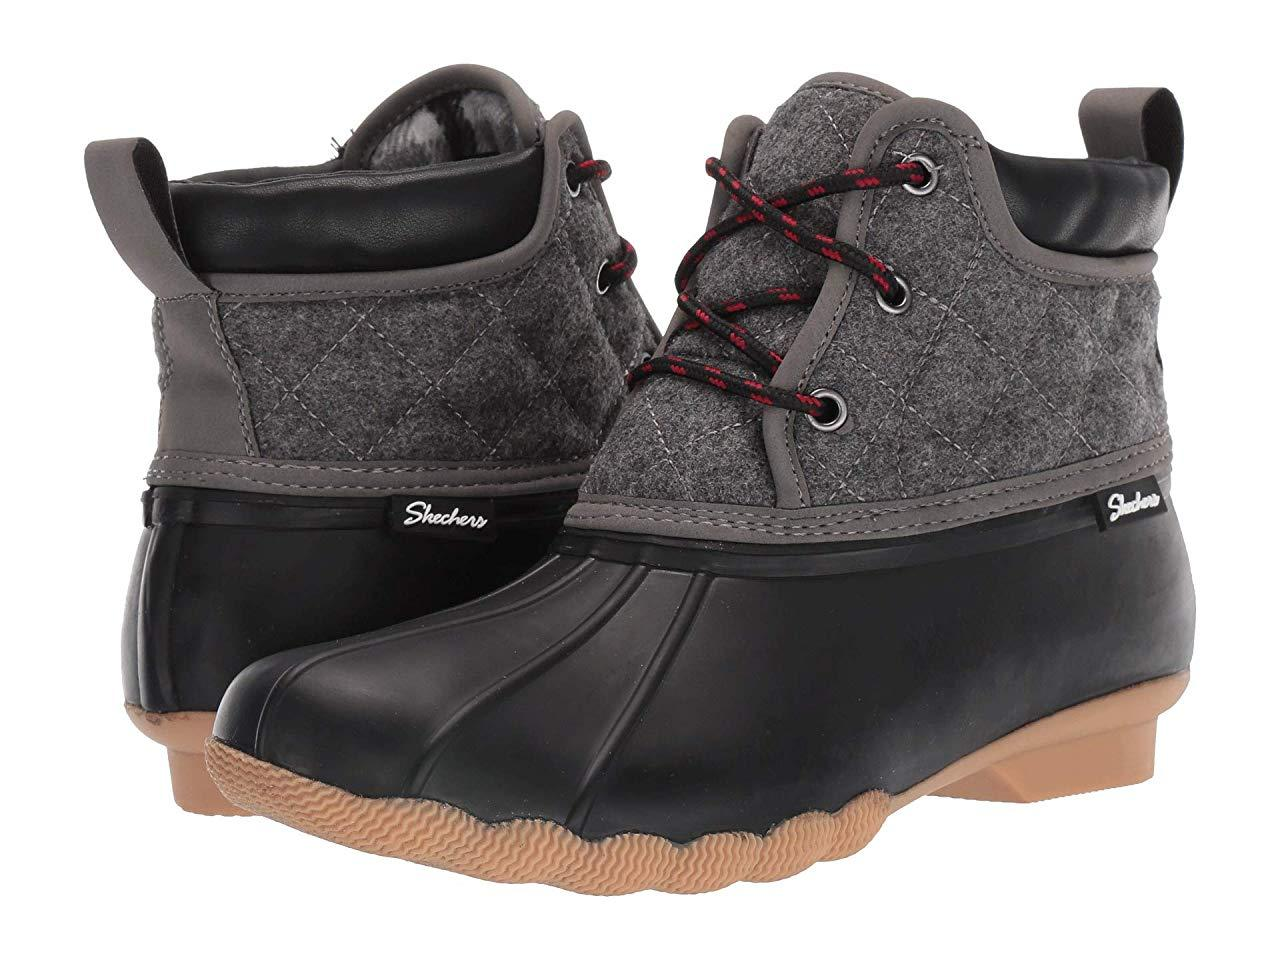 Ботинки/Сапоги (Оригинал) SKECHERS Mid Quilted Lace-Up Boot Black/Charcoal